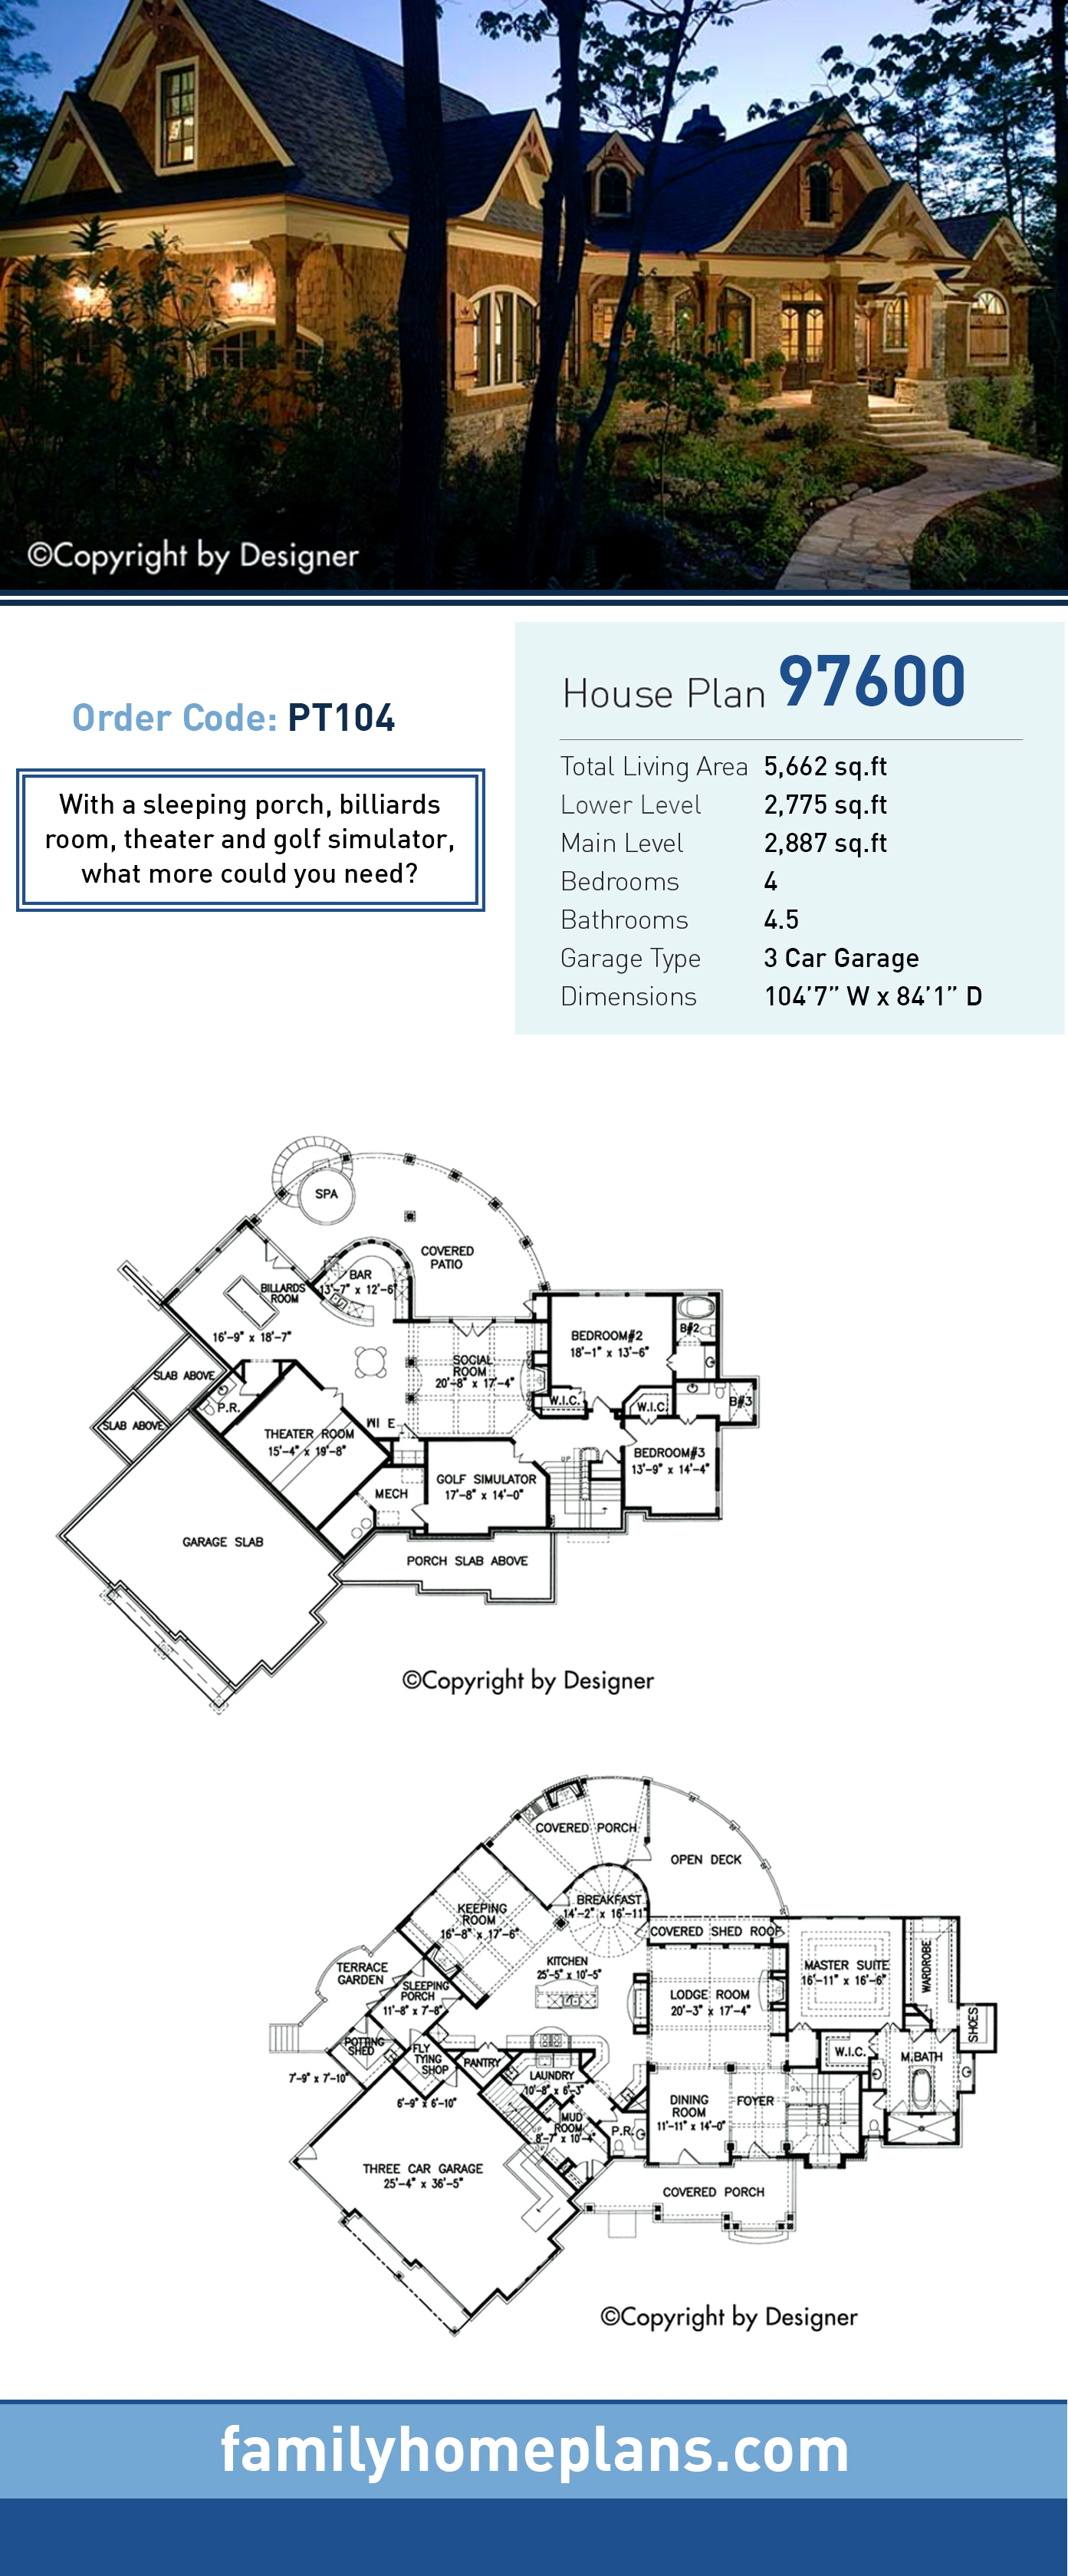 Cottage, Country, Craftsman, Southern House Plan 97600 with 4 Beds, 5 Baths, 3 Car Garage